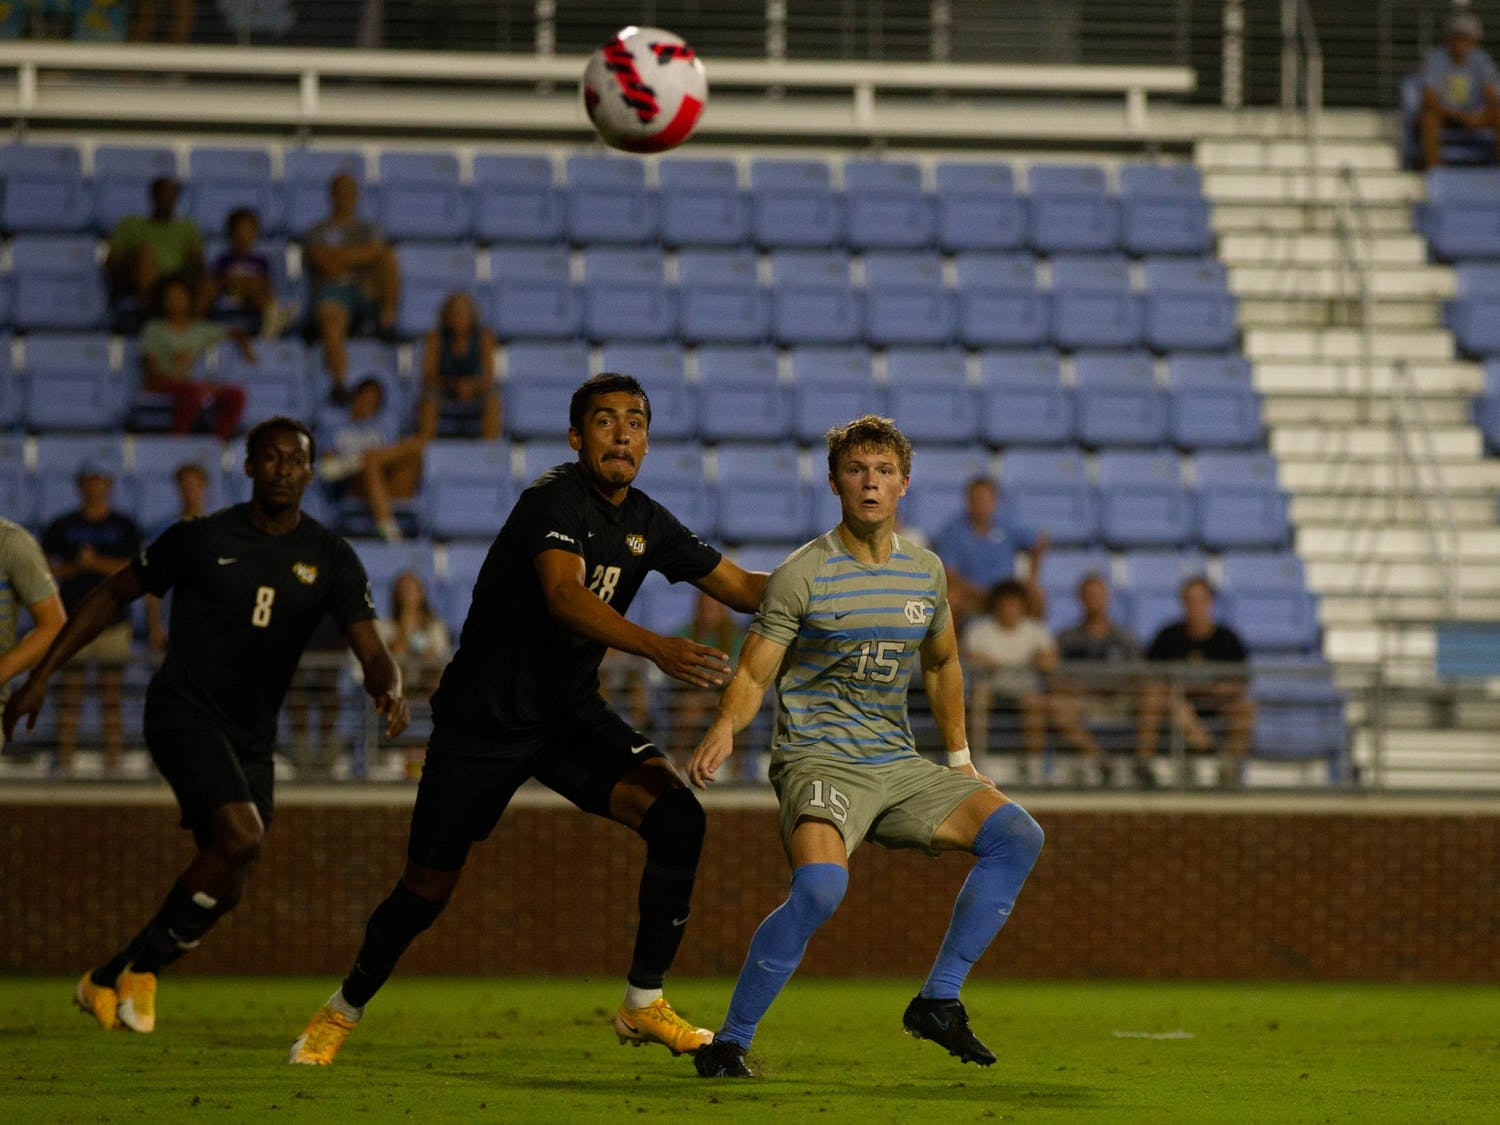 UNC sophomore defender Riley Thomas (15) eyes the ball at the soccer game against Virginia Commonwealth on Aug. 29 in Chapel Hill. UNC tied 1-1.